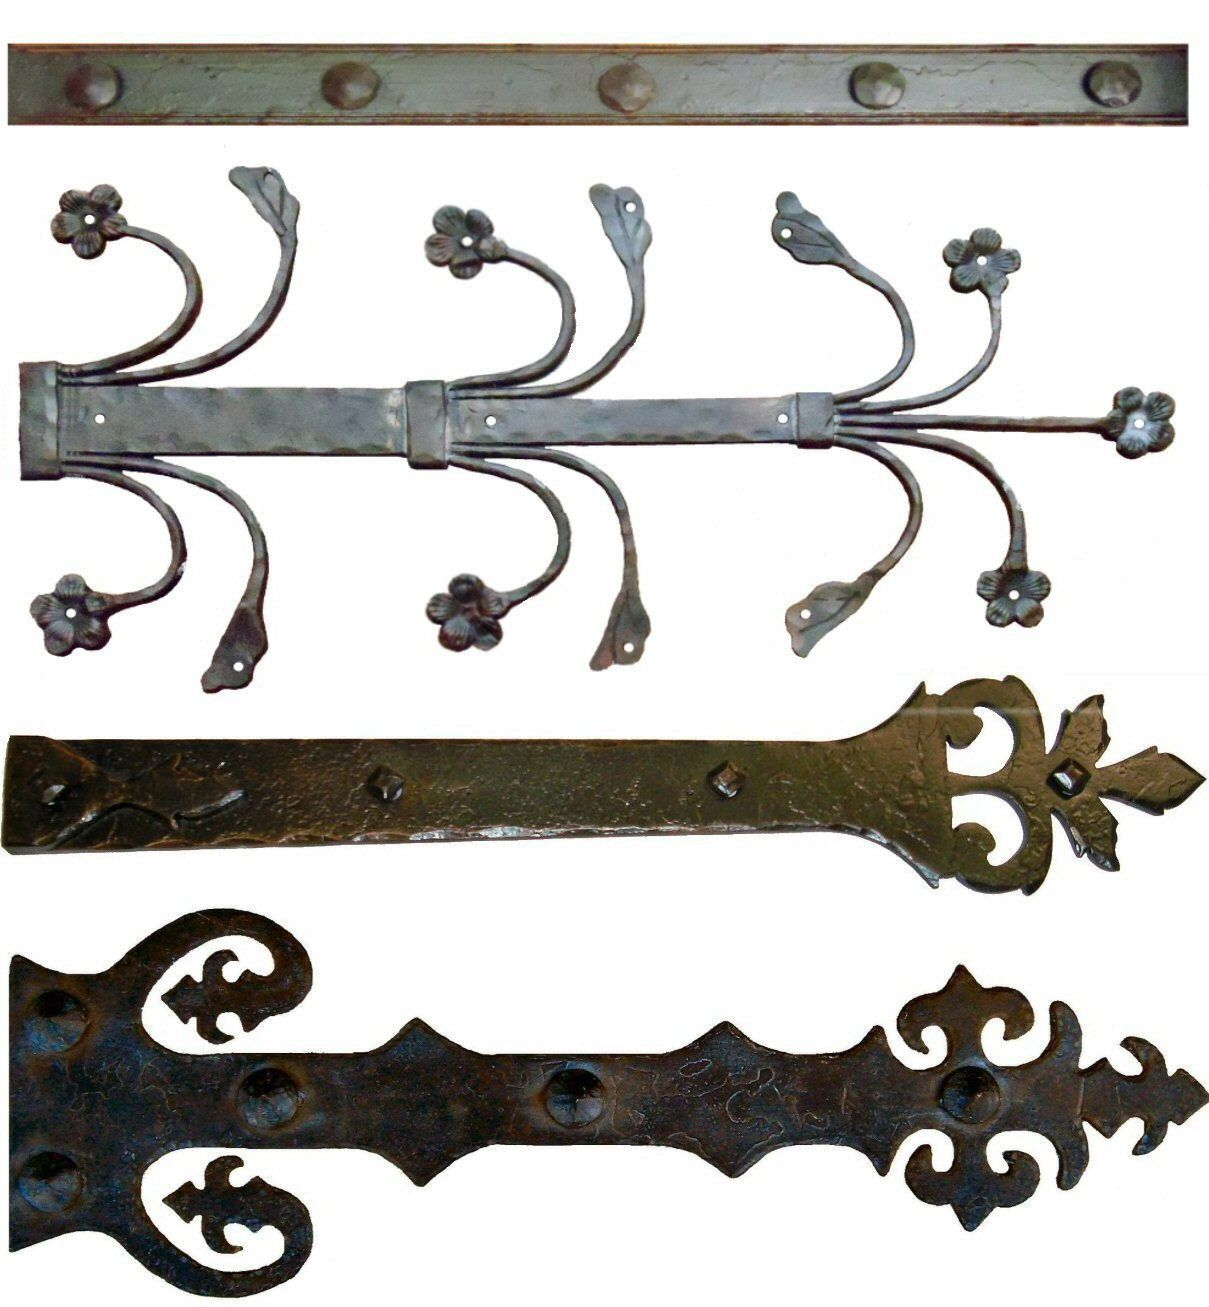 The Decorative Iron Hinge Strap Pictured Is Shown All Hammered With A Flat  Blacku2026